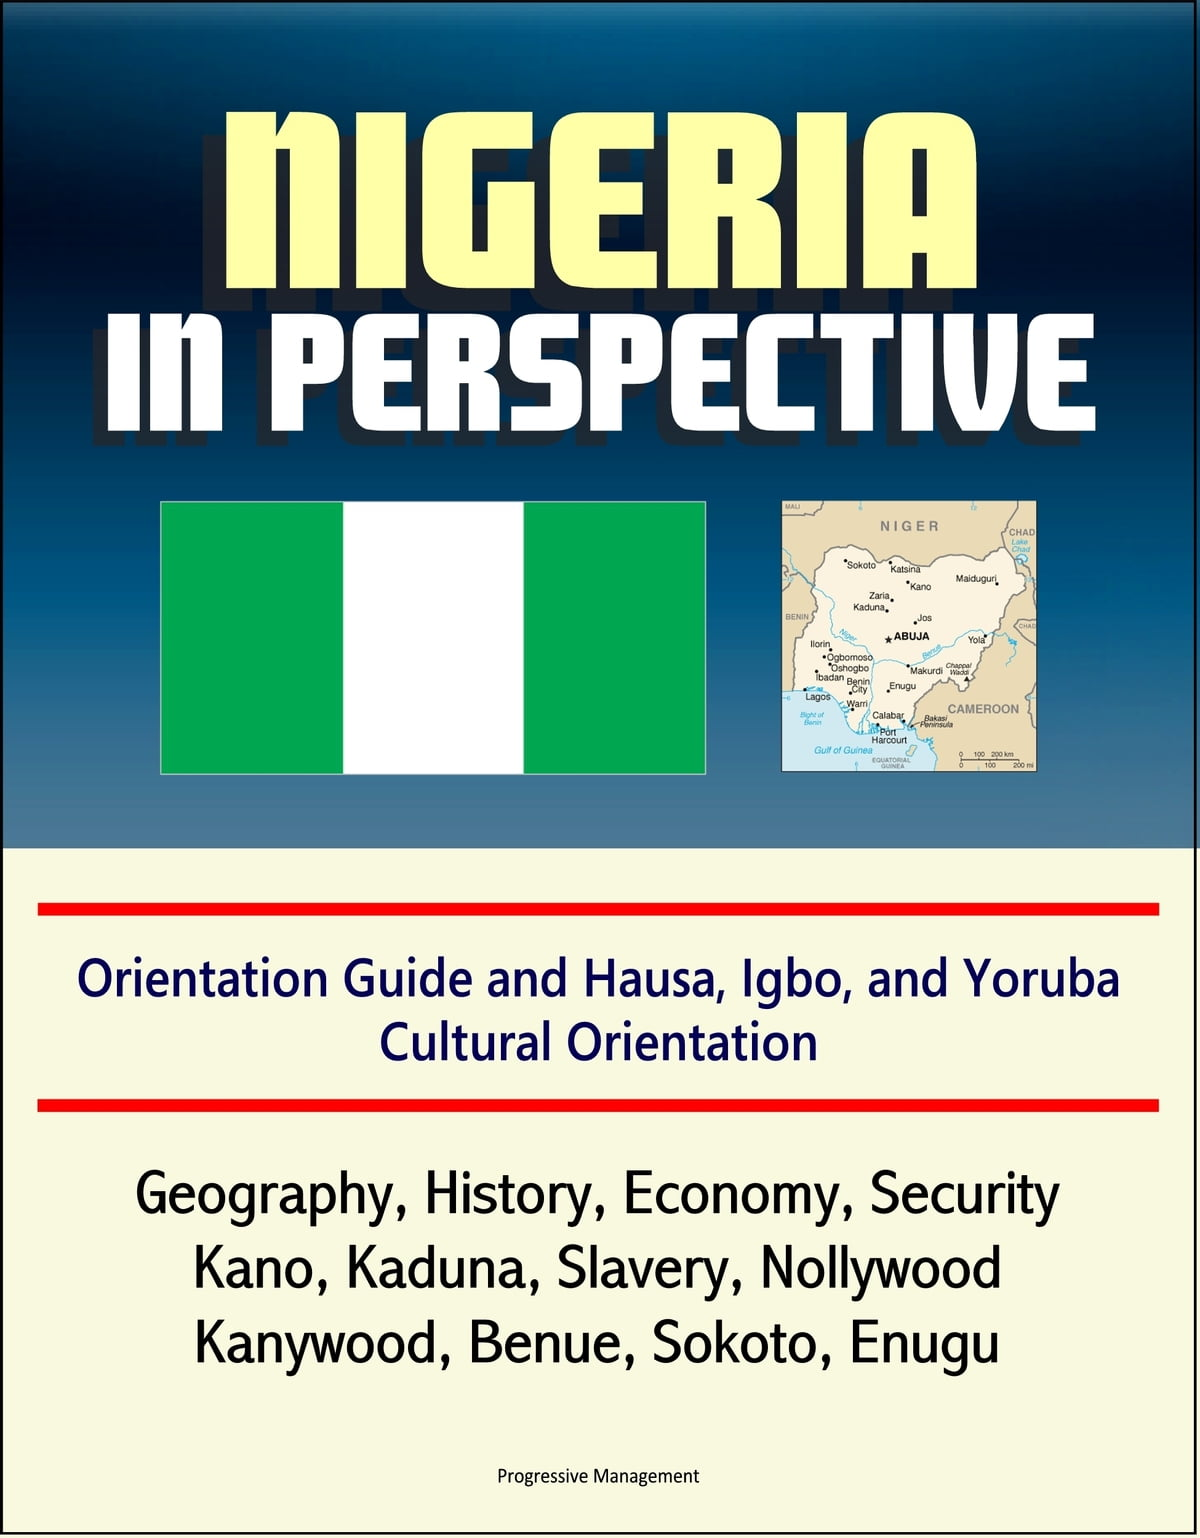 Nigeria in Perspective: Orientation Guide and Hausa, Igbo